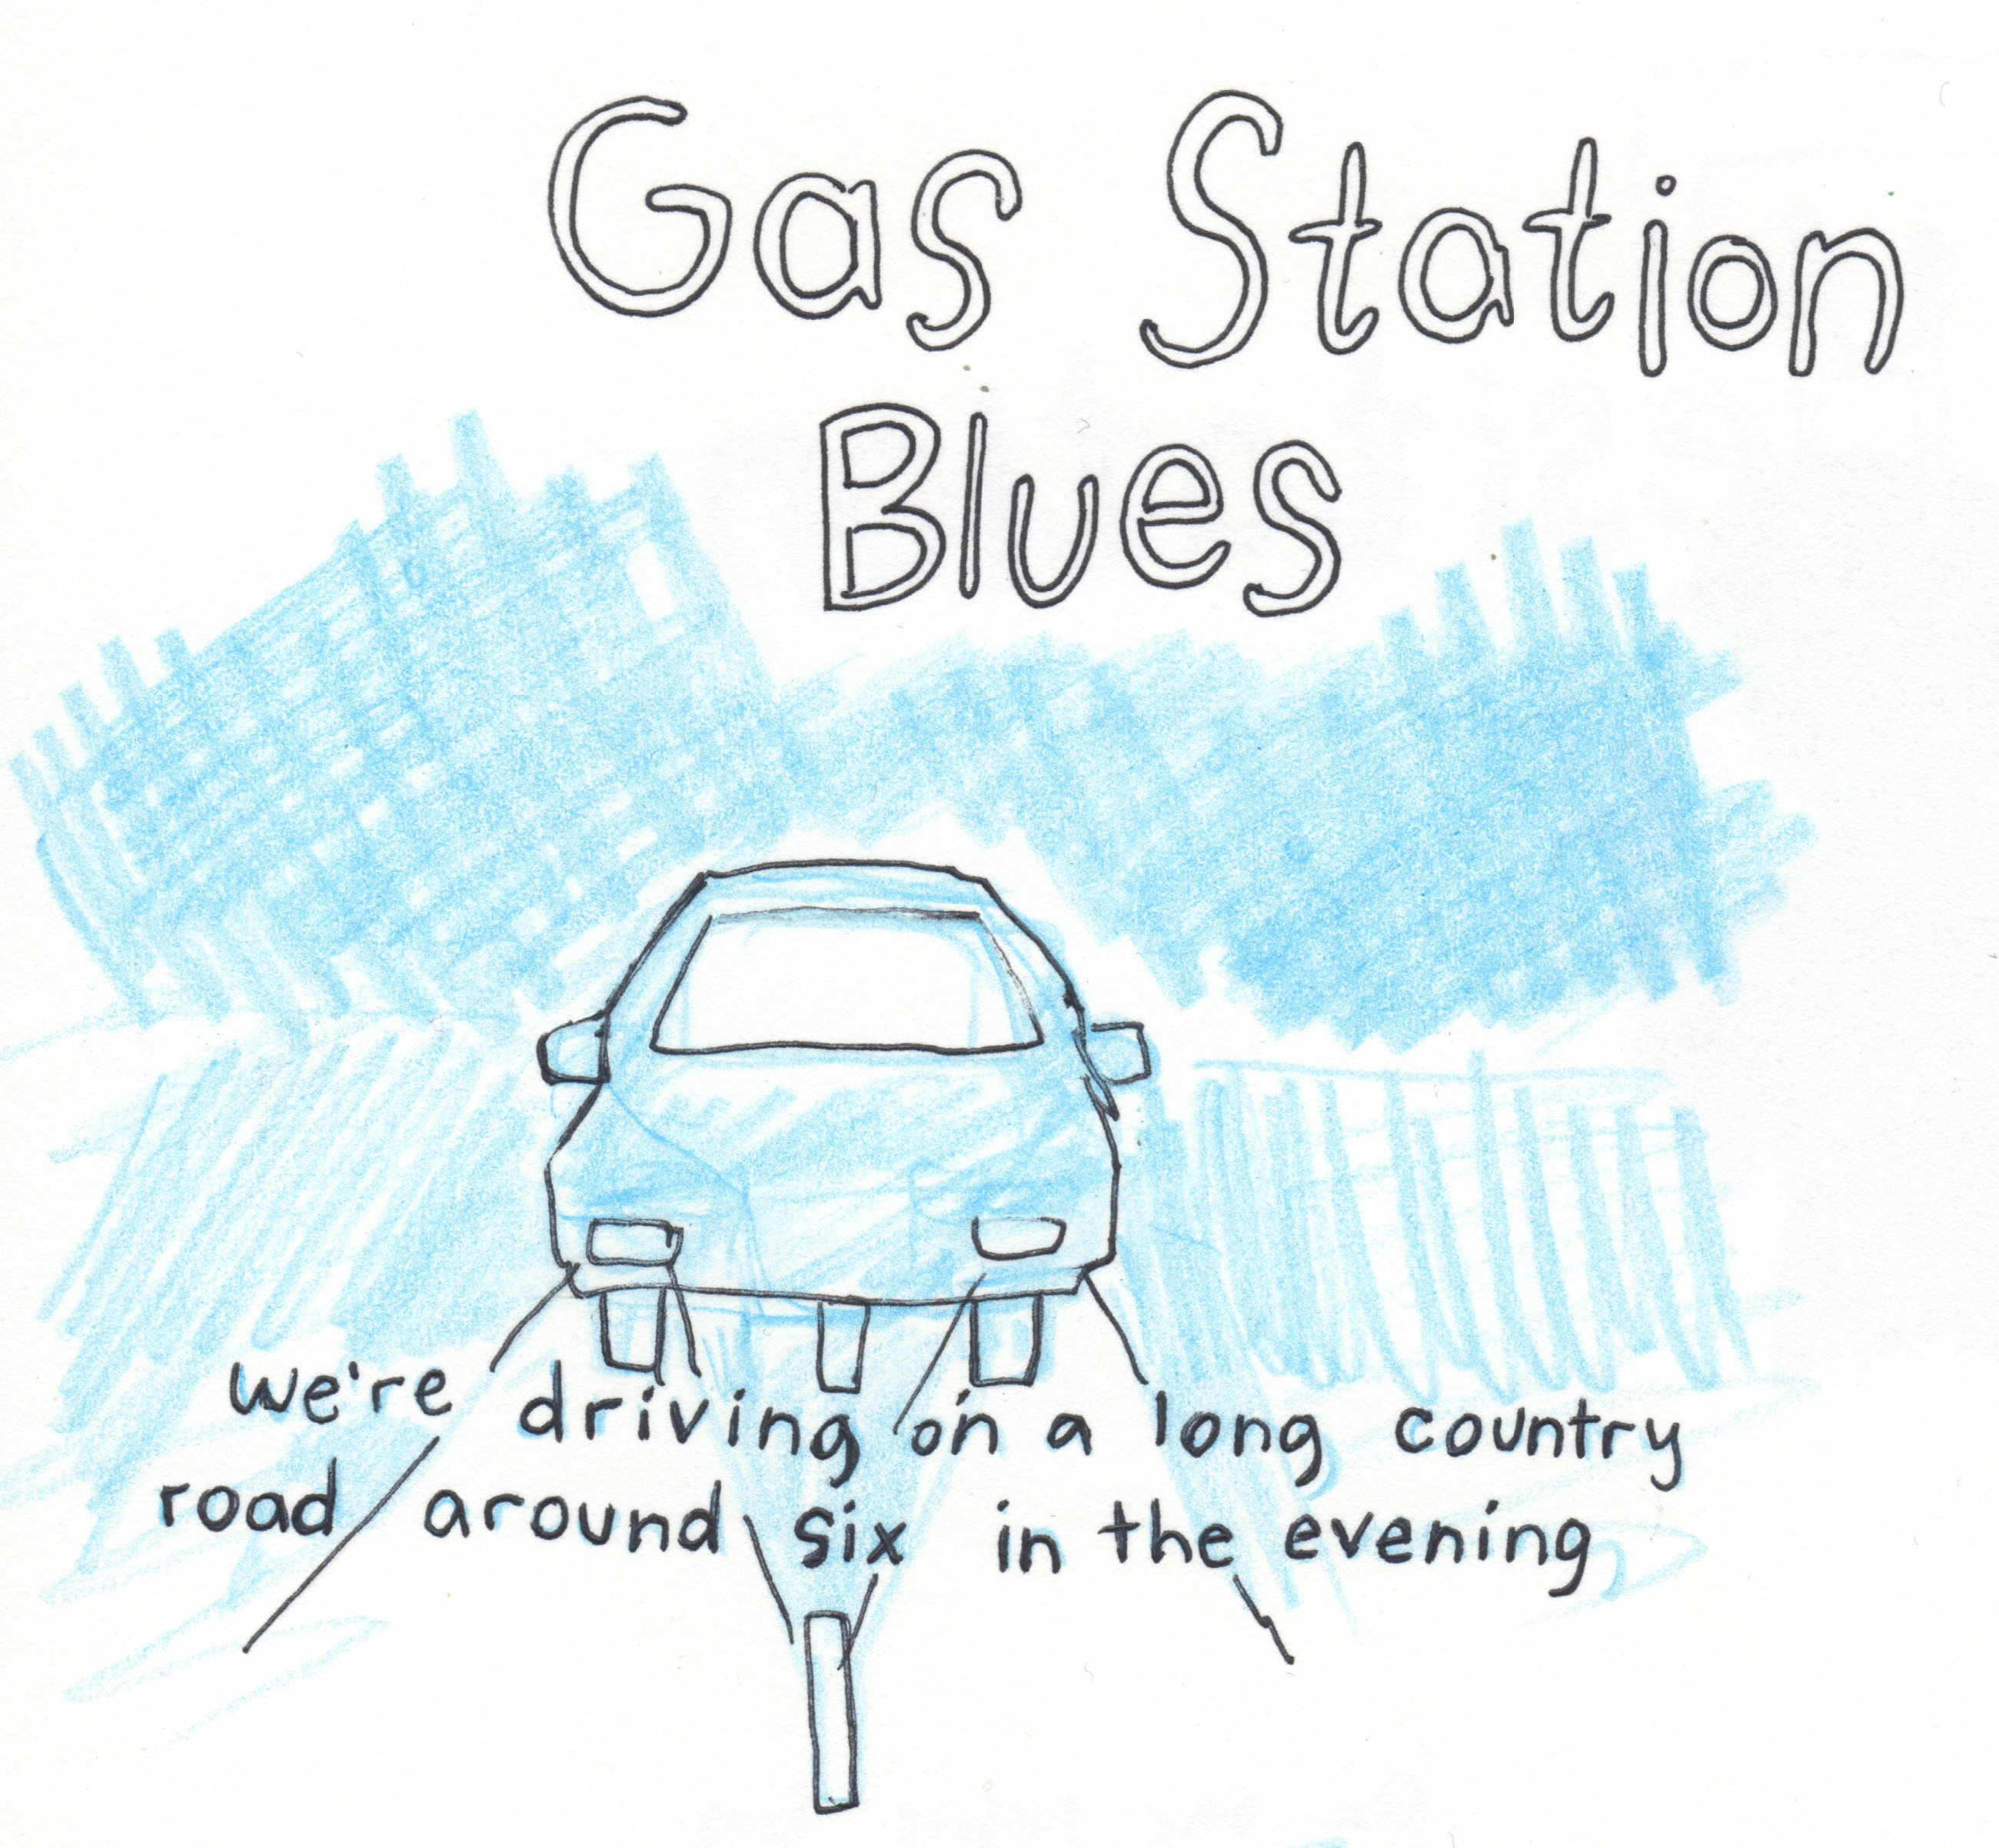 Gas Station Blues